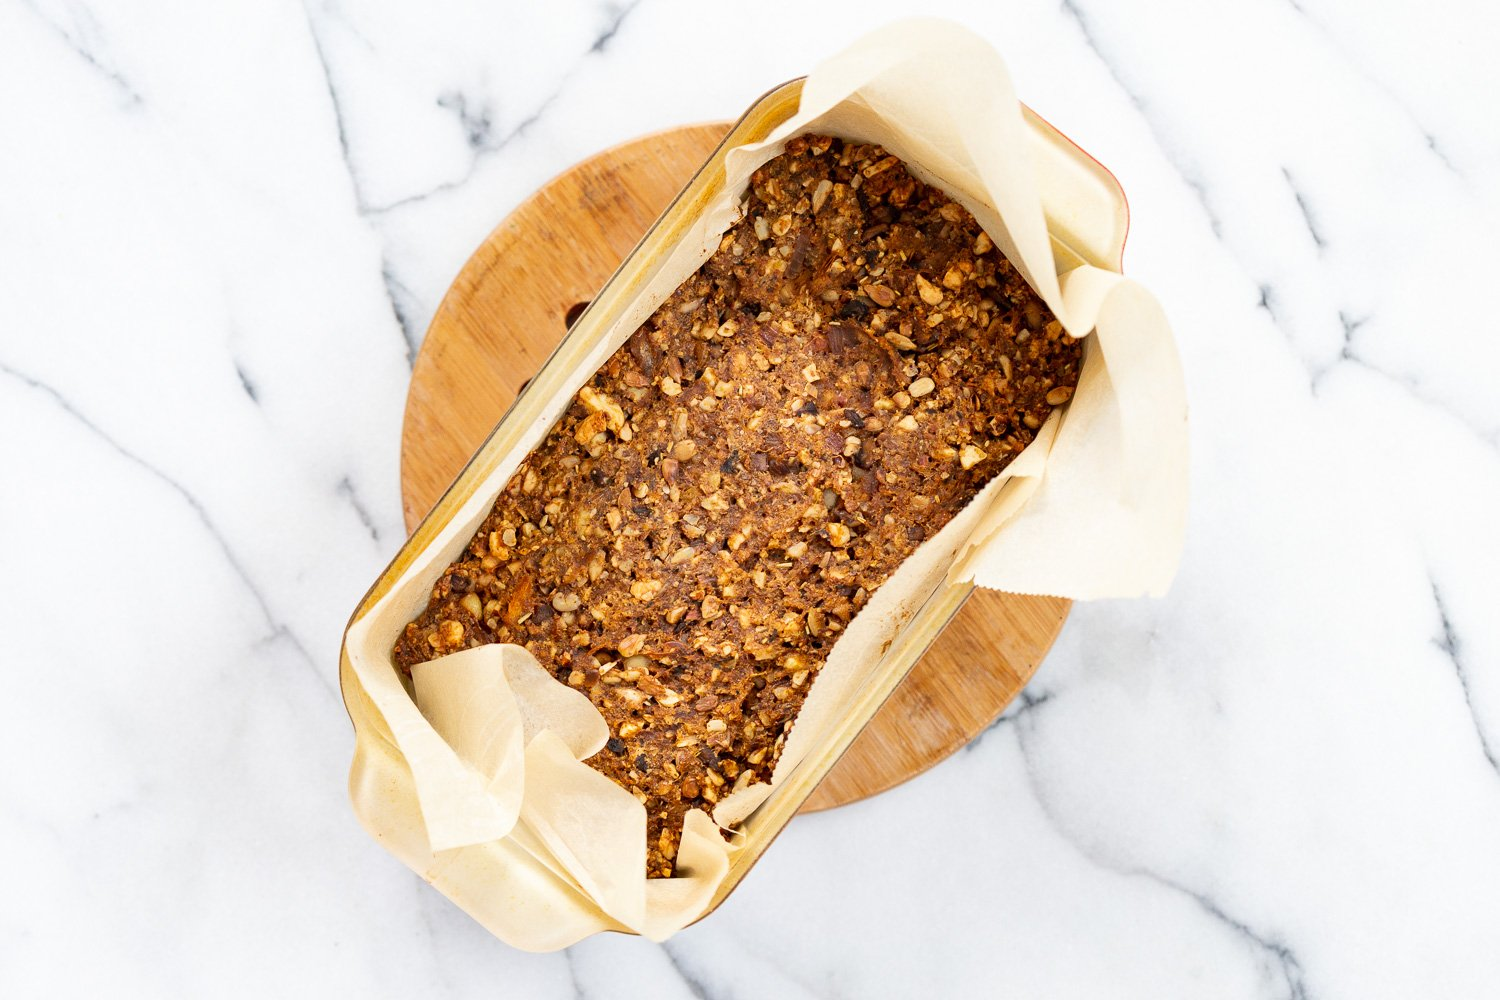 This Vegan Meatloaf is flavorful, decadent, nutty and great for anyone wanting a no bean/lentil loaf. Use nuts of choice. #Vegan #Recipe #VeganRicha . Can be Glutenfree